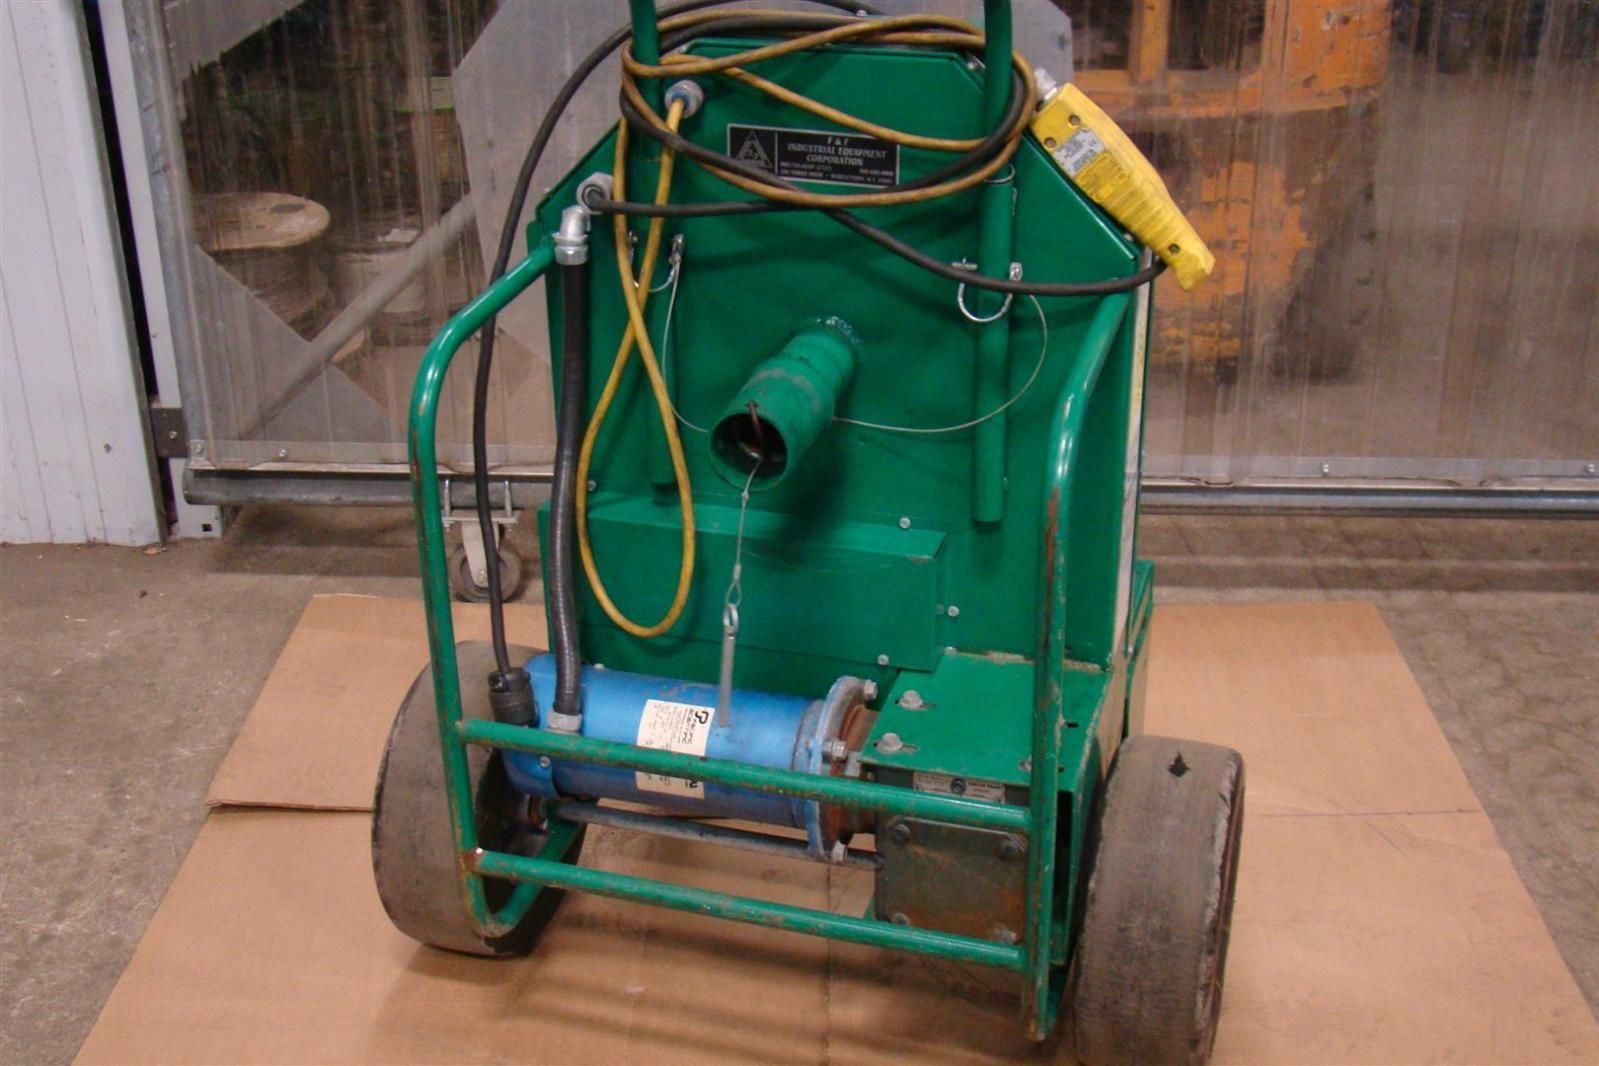 Details about GreenLee 555 Electric Bender Power Unit without Shoes #095F45